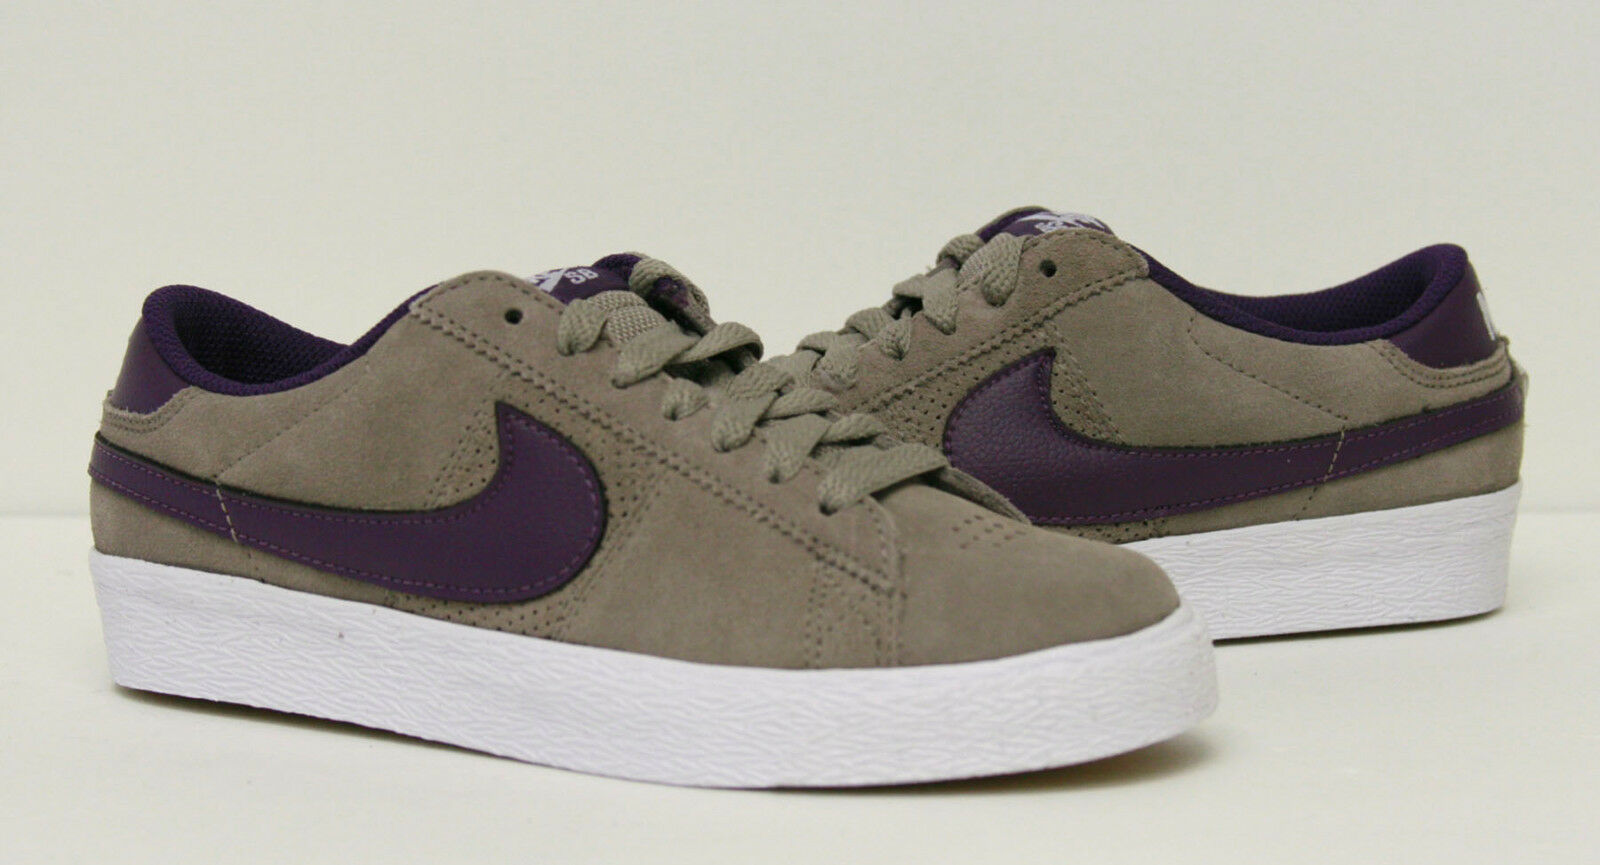 Nike SB Blazer Low Shoes 318960-251 Mens 4, 5, 7.5 Available Seasonal clearance sale